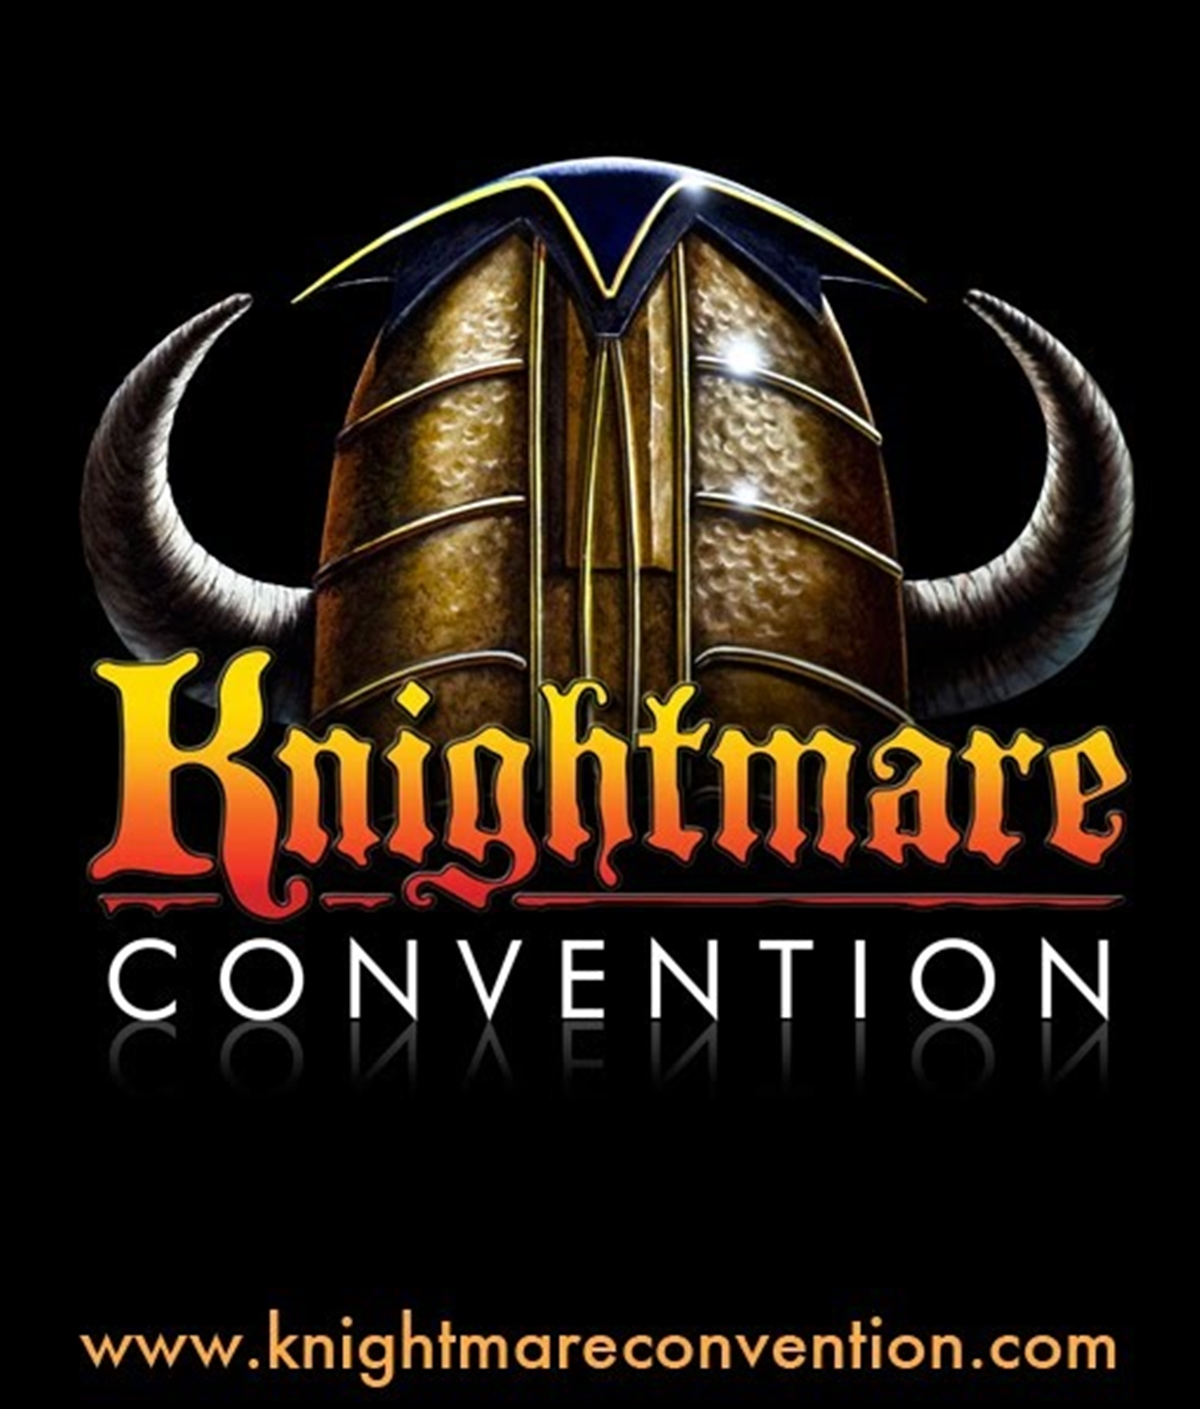 10 38 12 Fascinating Facts About Knightmare